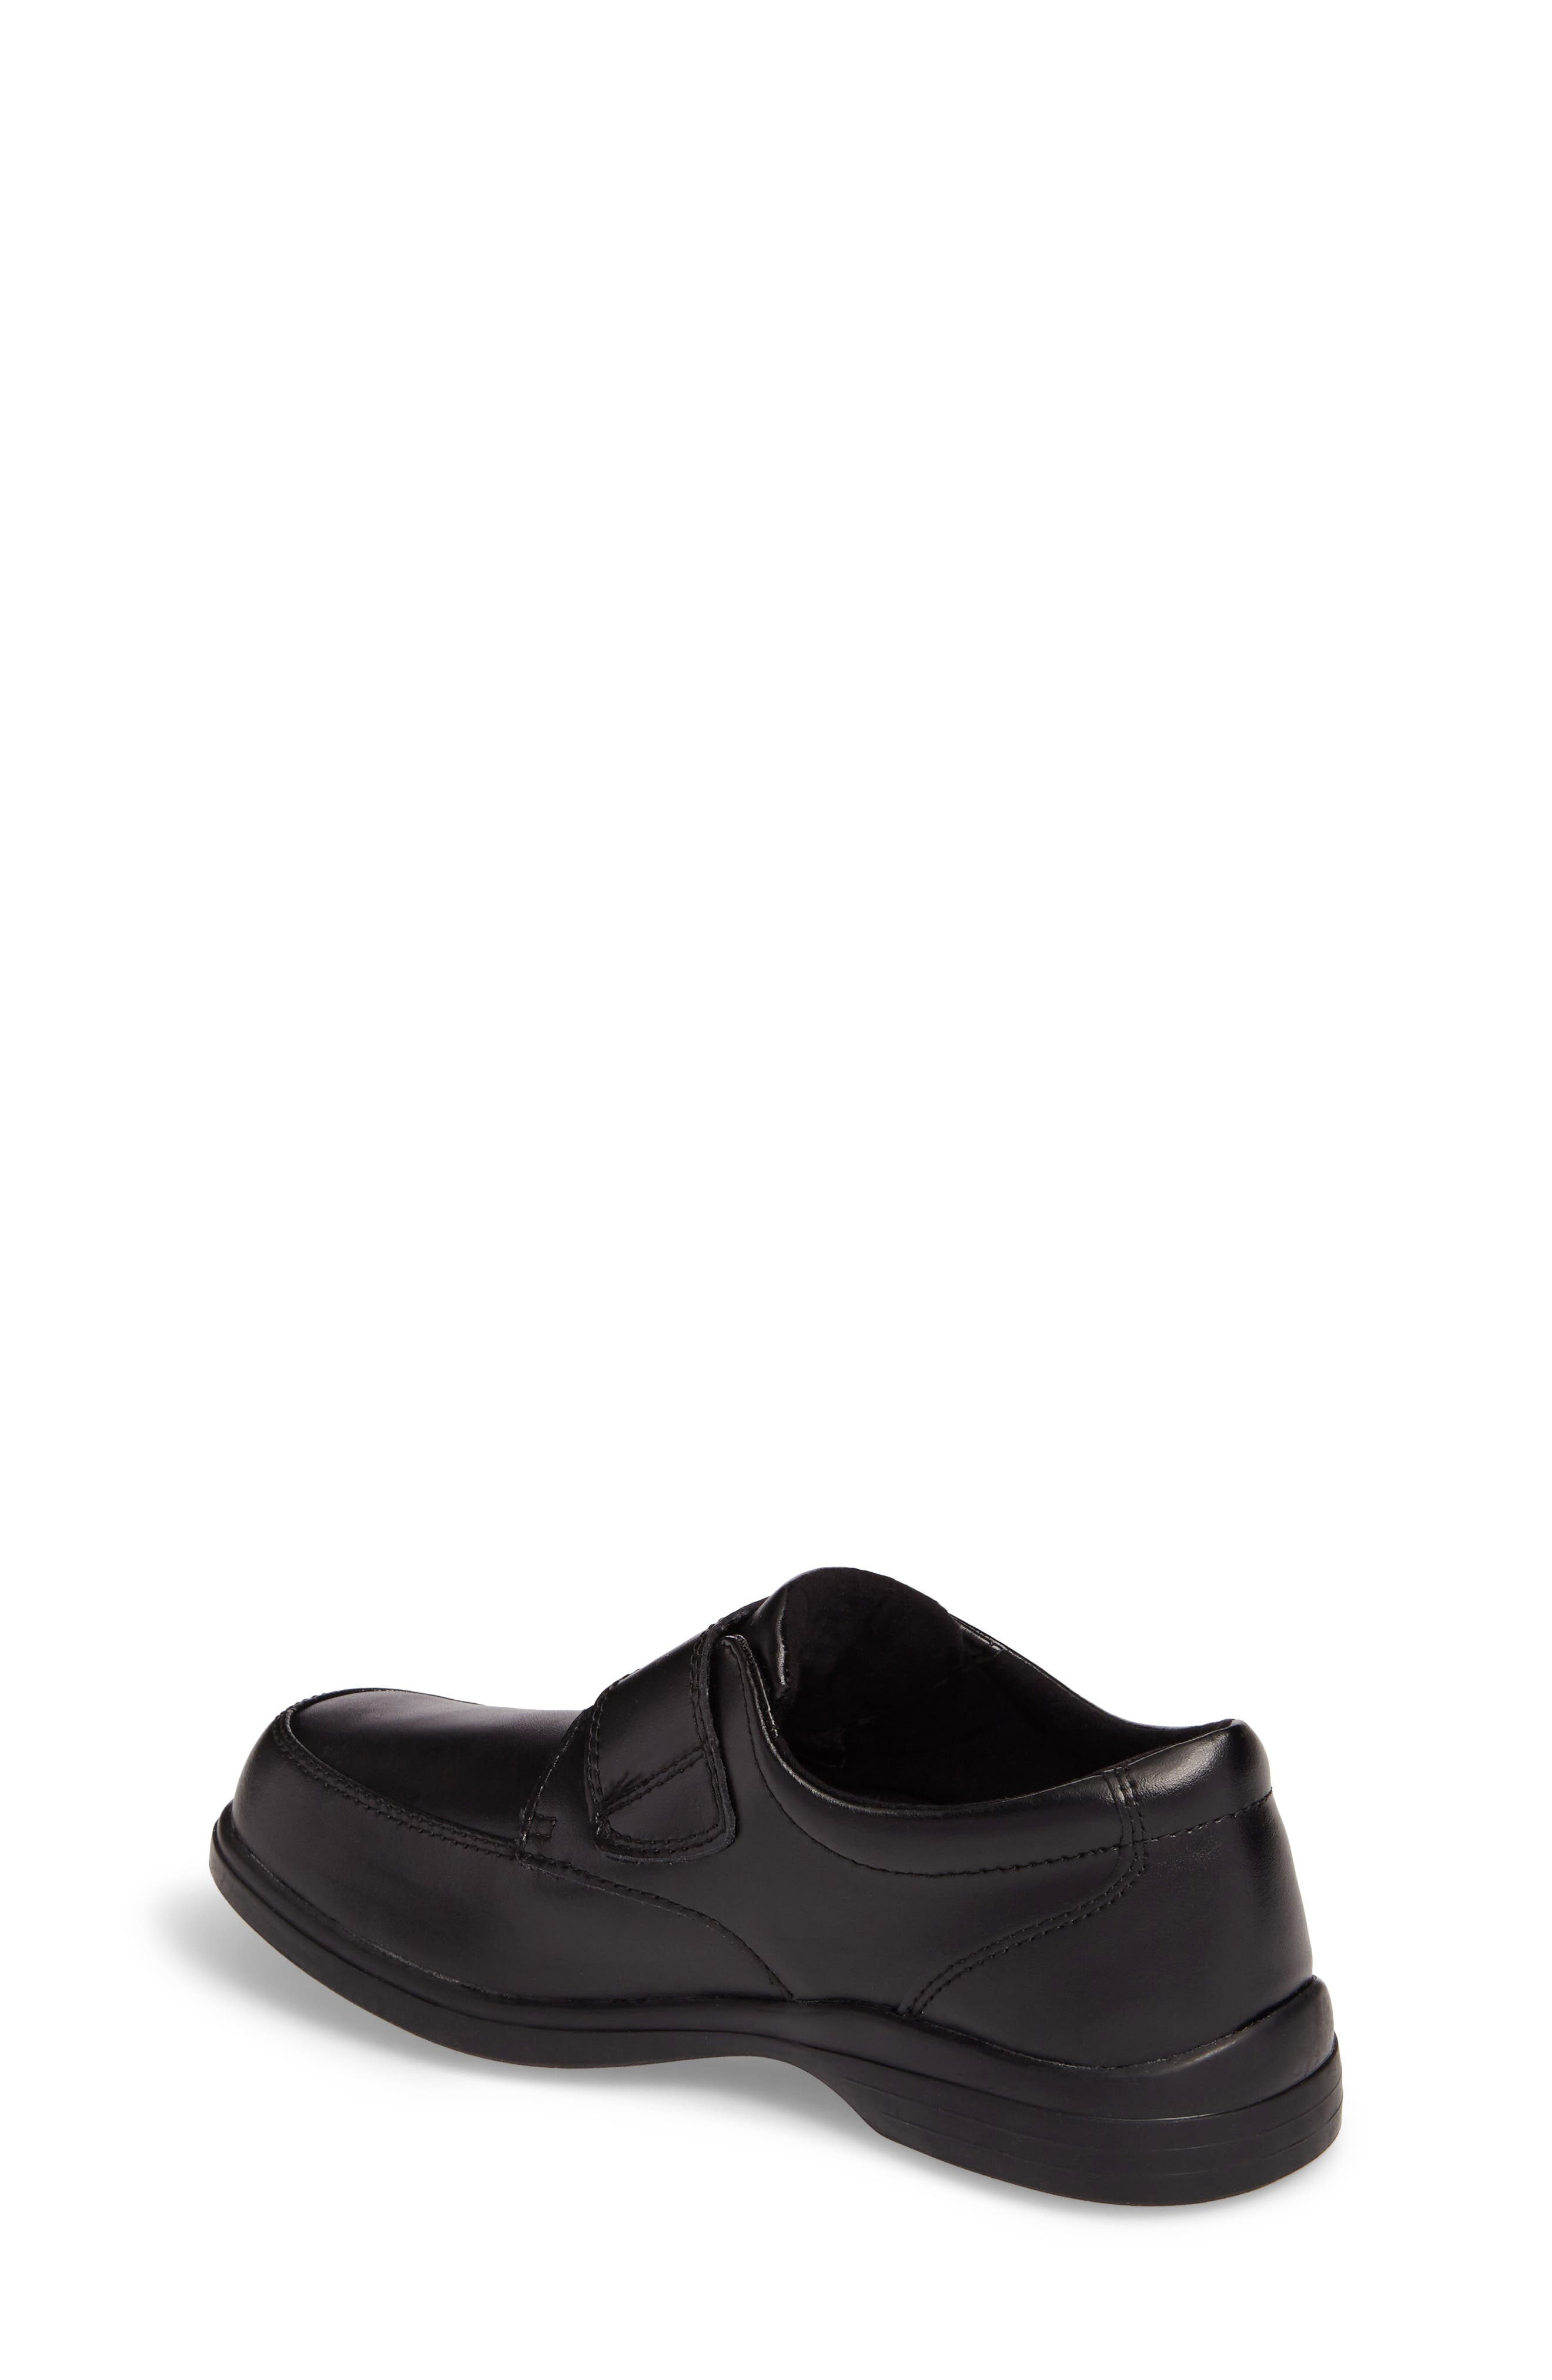 Hush Puppies Gavin Front Strap Dress Shoe,                             Alternate thumbnail 2, color,                             BLACK LEATHER